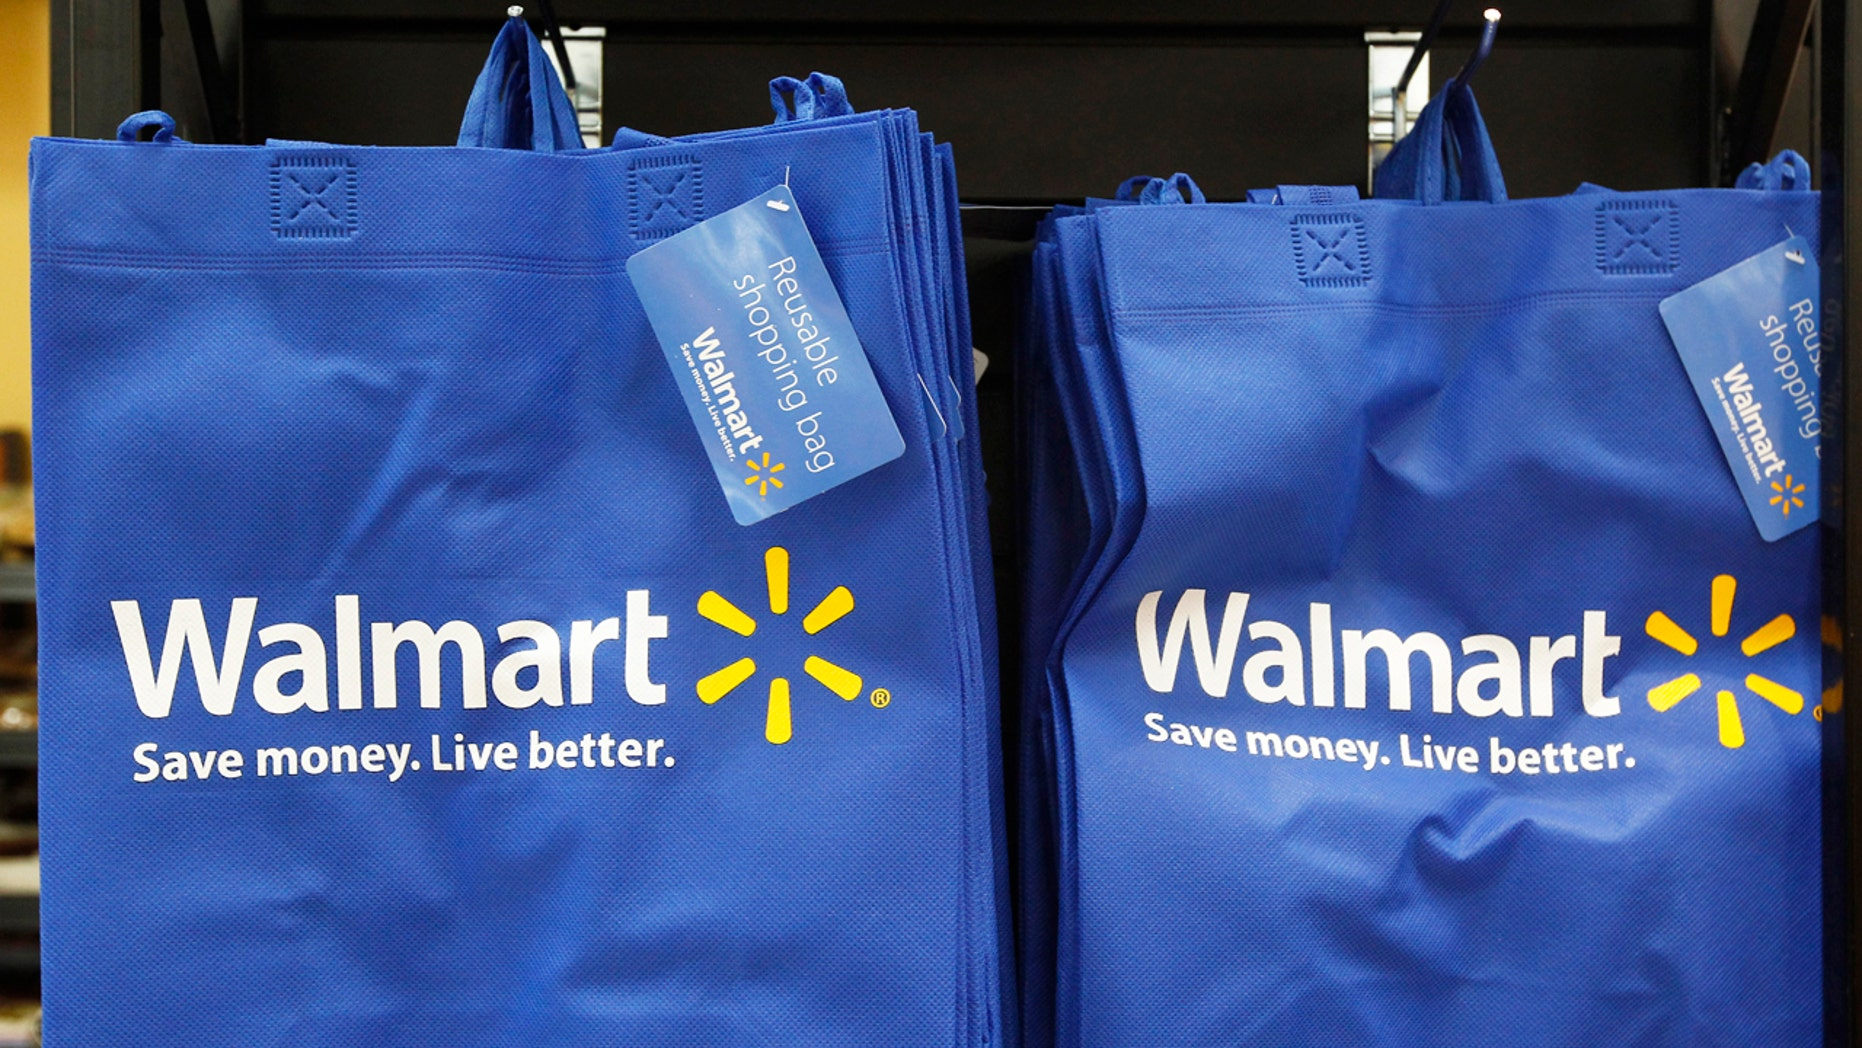 Re-useable Walmart bags are seen in a newly opened Walmart Neighborhood Market in Chicago September 21, 2011. The 27,000 square foot (2,508 square meters) store is the first in Illinois with an emphasis on groceries and basic household goods.  REUTERS/Jim Young      (UNITED STATES - Tags: FOOD BUSINESS) - RTR2RN4S